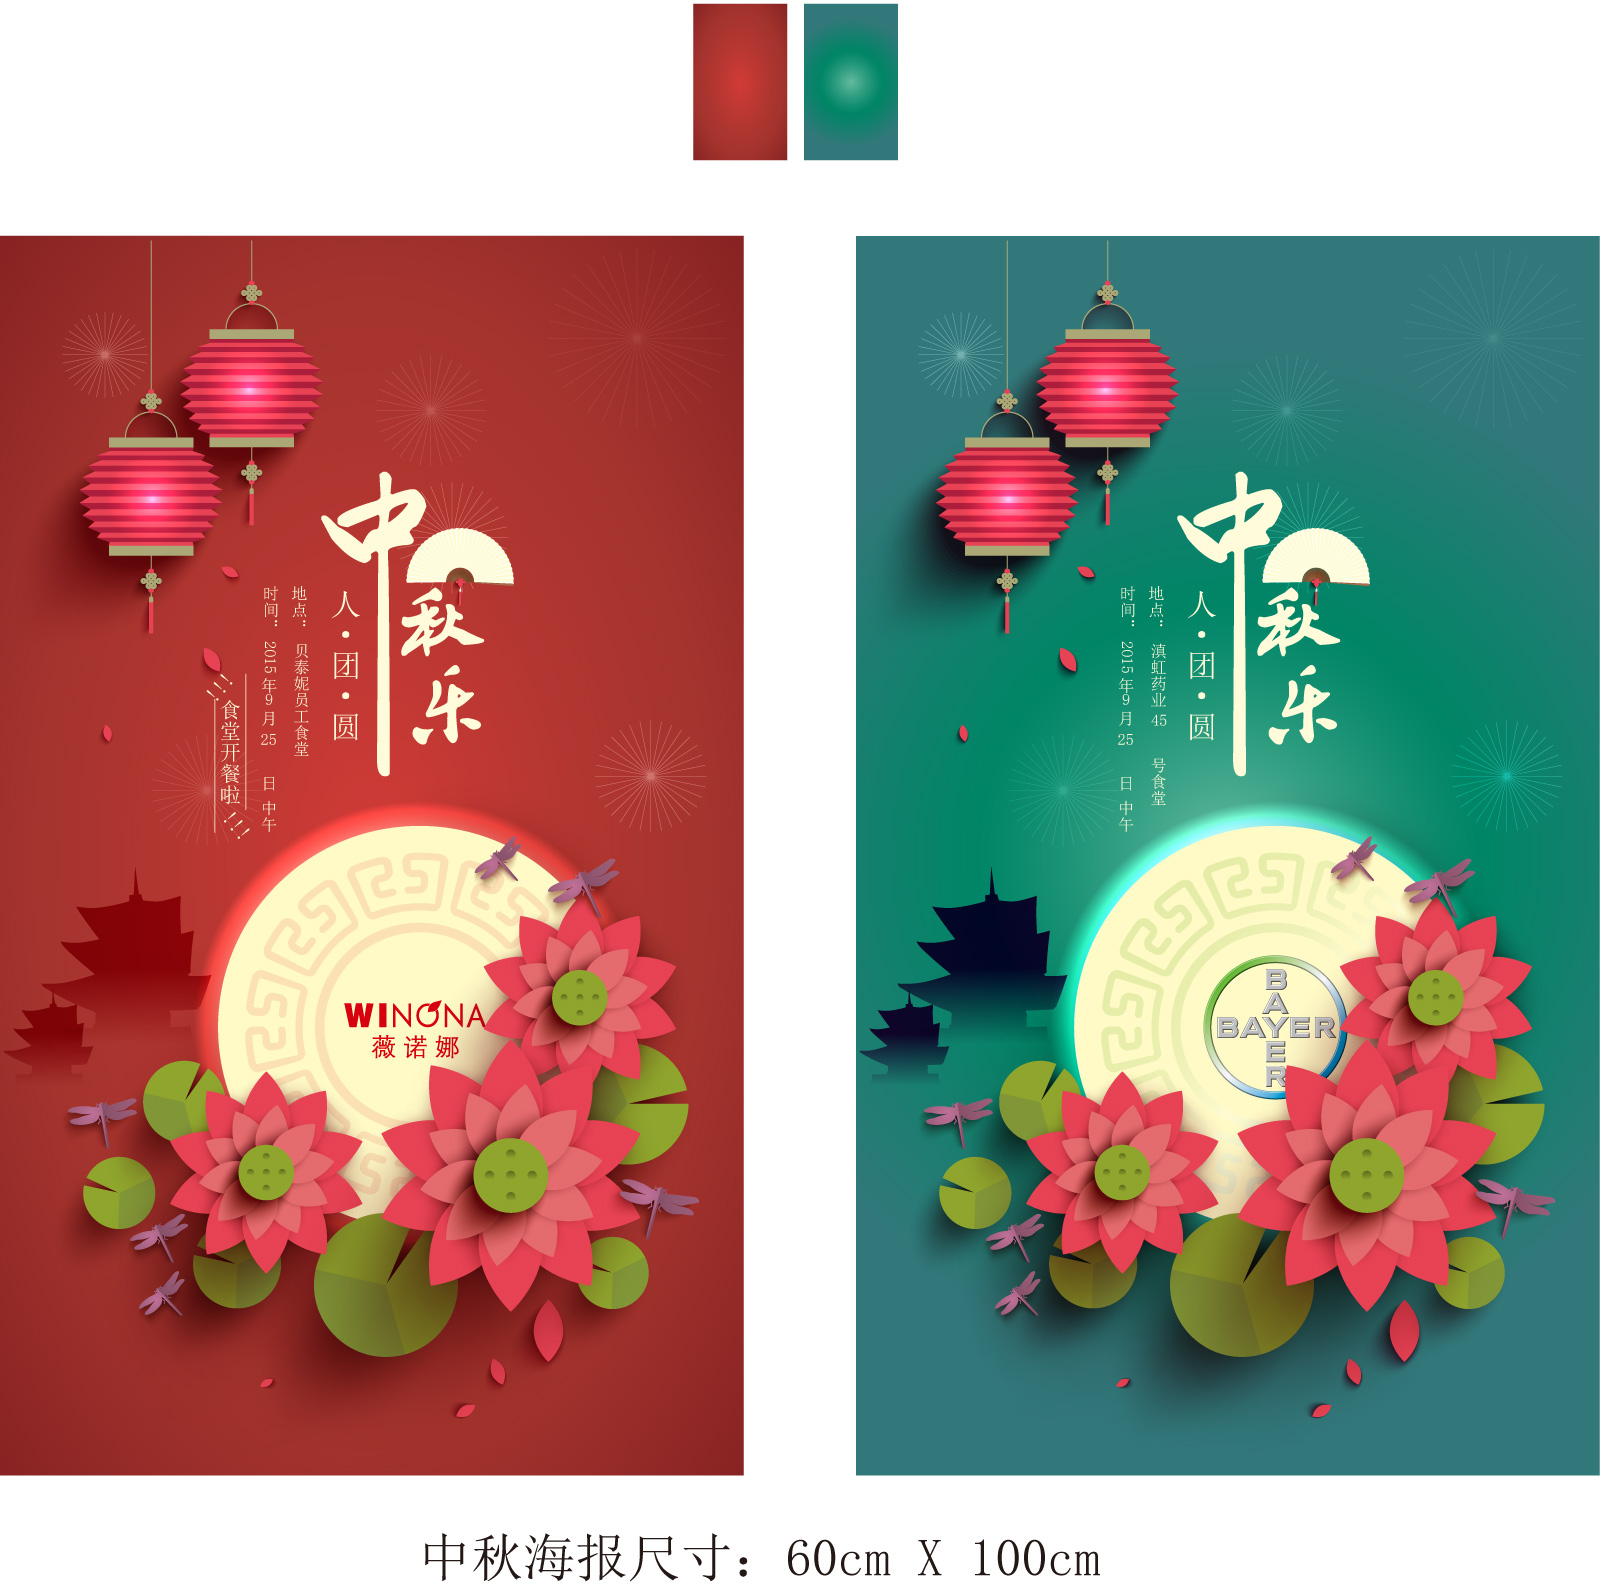 Exquisite Chinese Mid-Autumn Festival poster promotional design Illustrations Vectors AI ESP